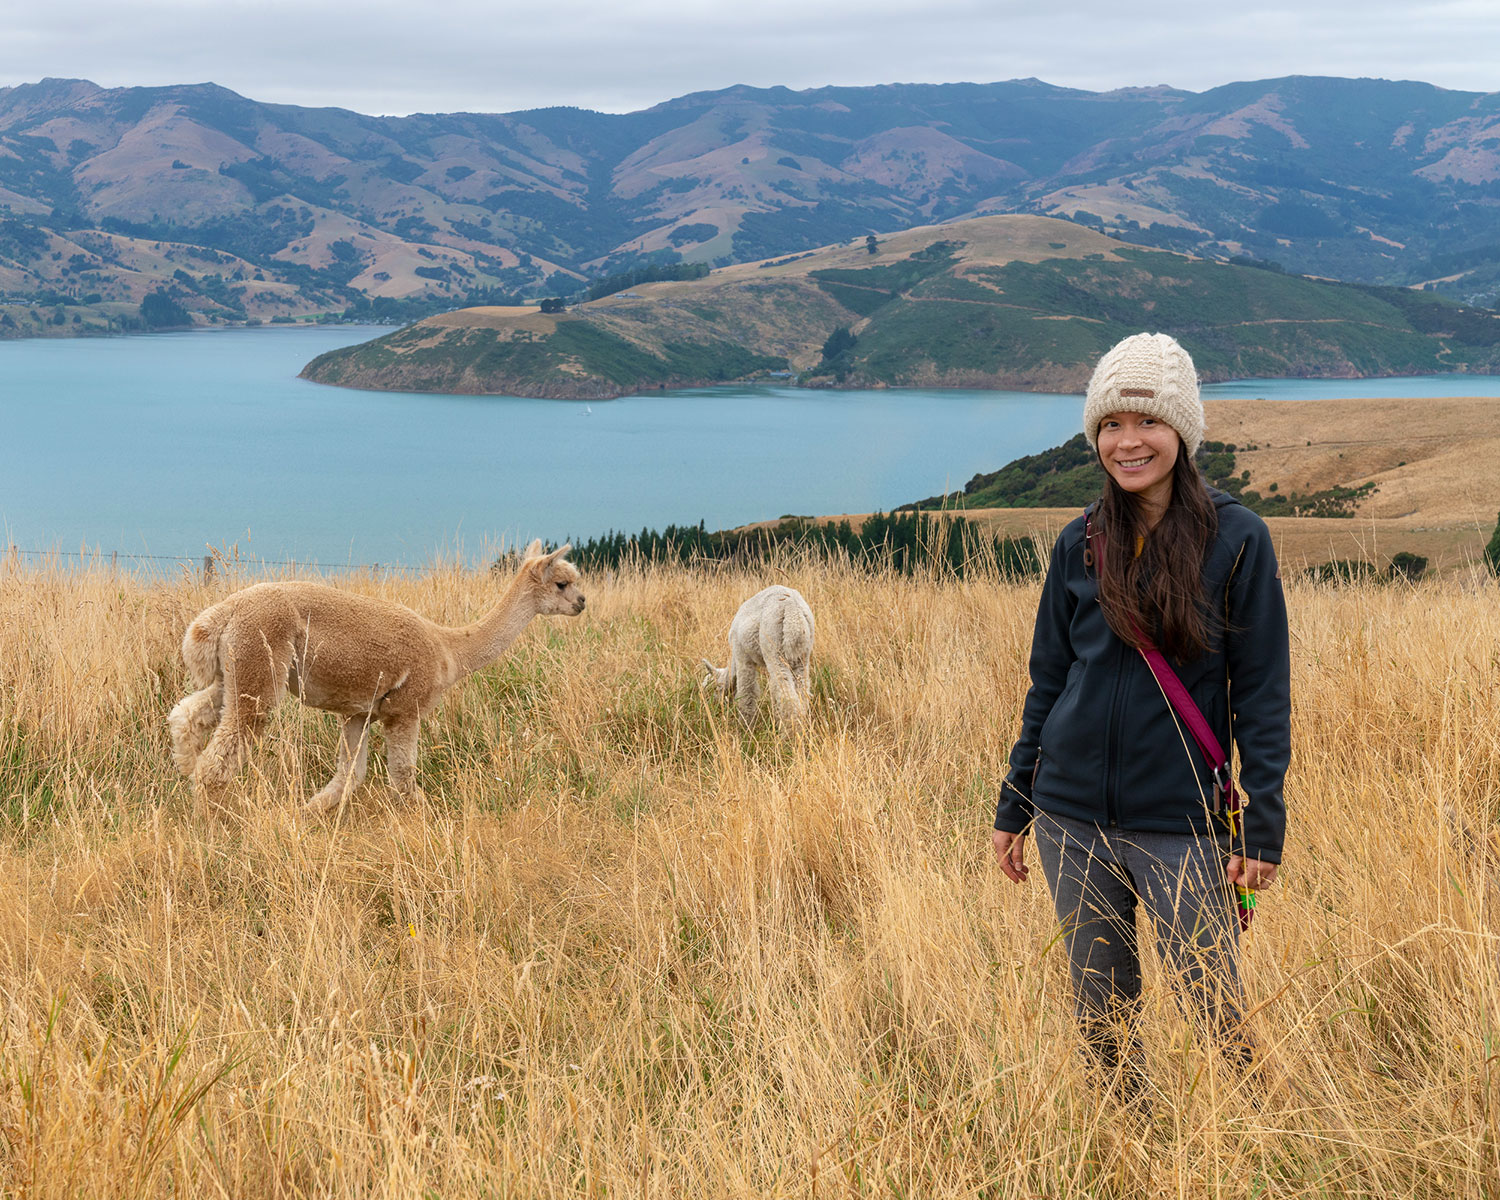 Thaneeya McArdle at Shamarra Alpaca Farm in Akaroa, New Zealand